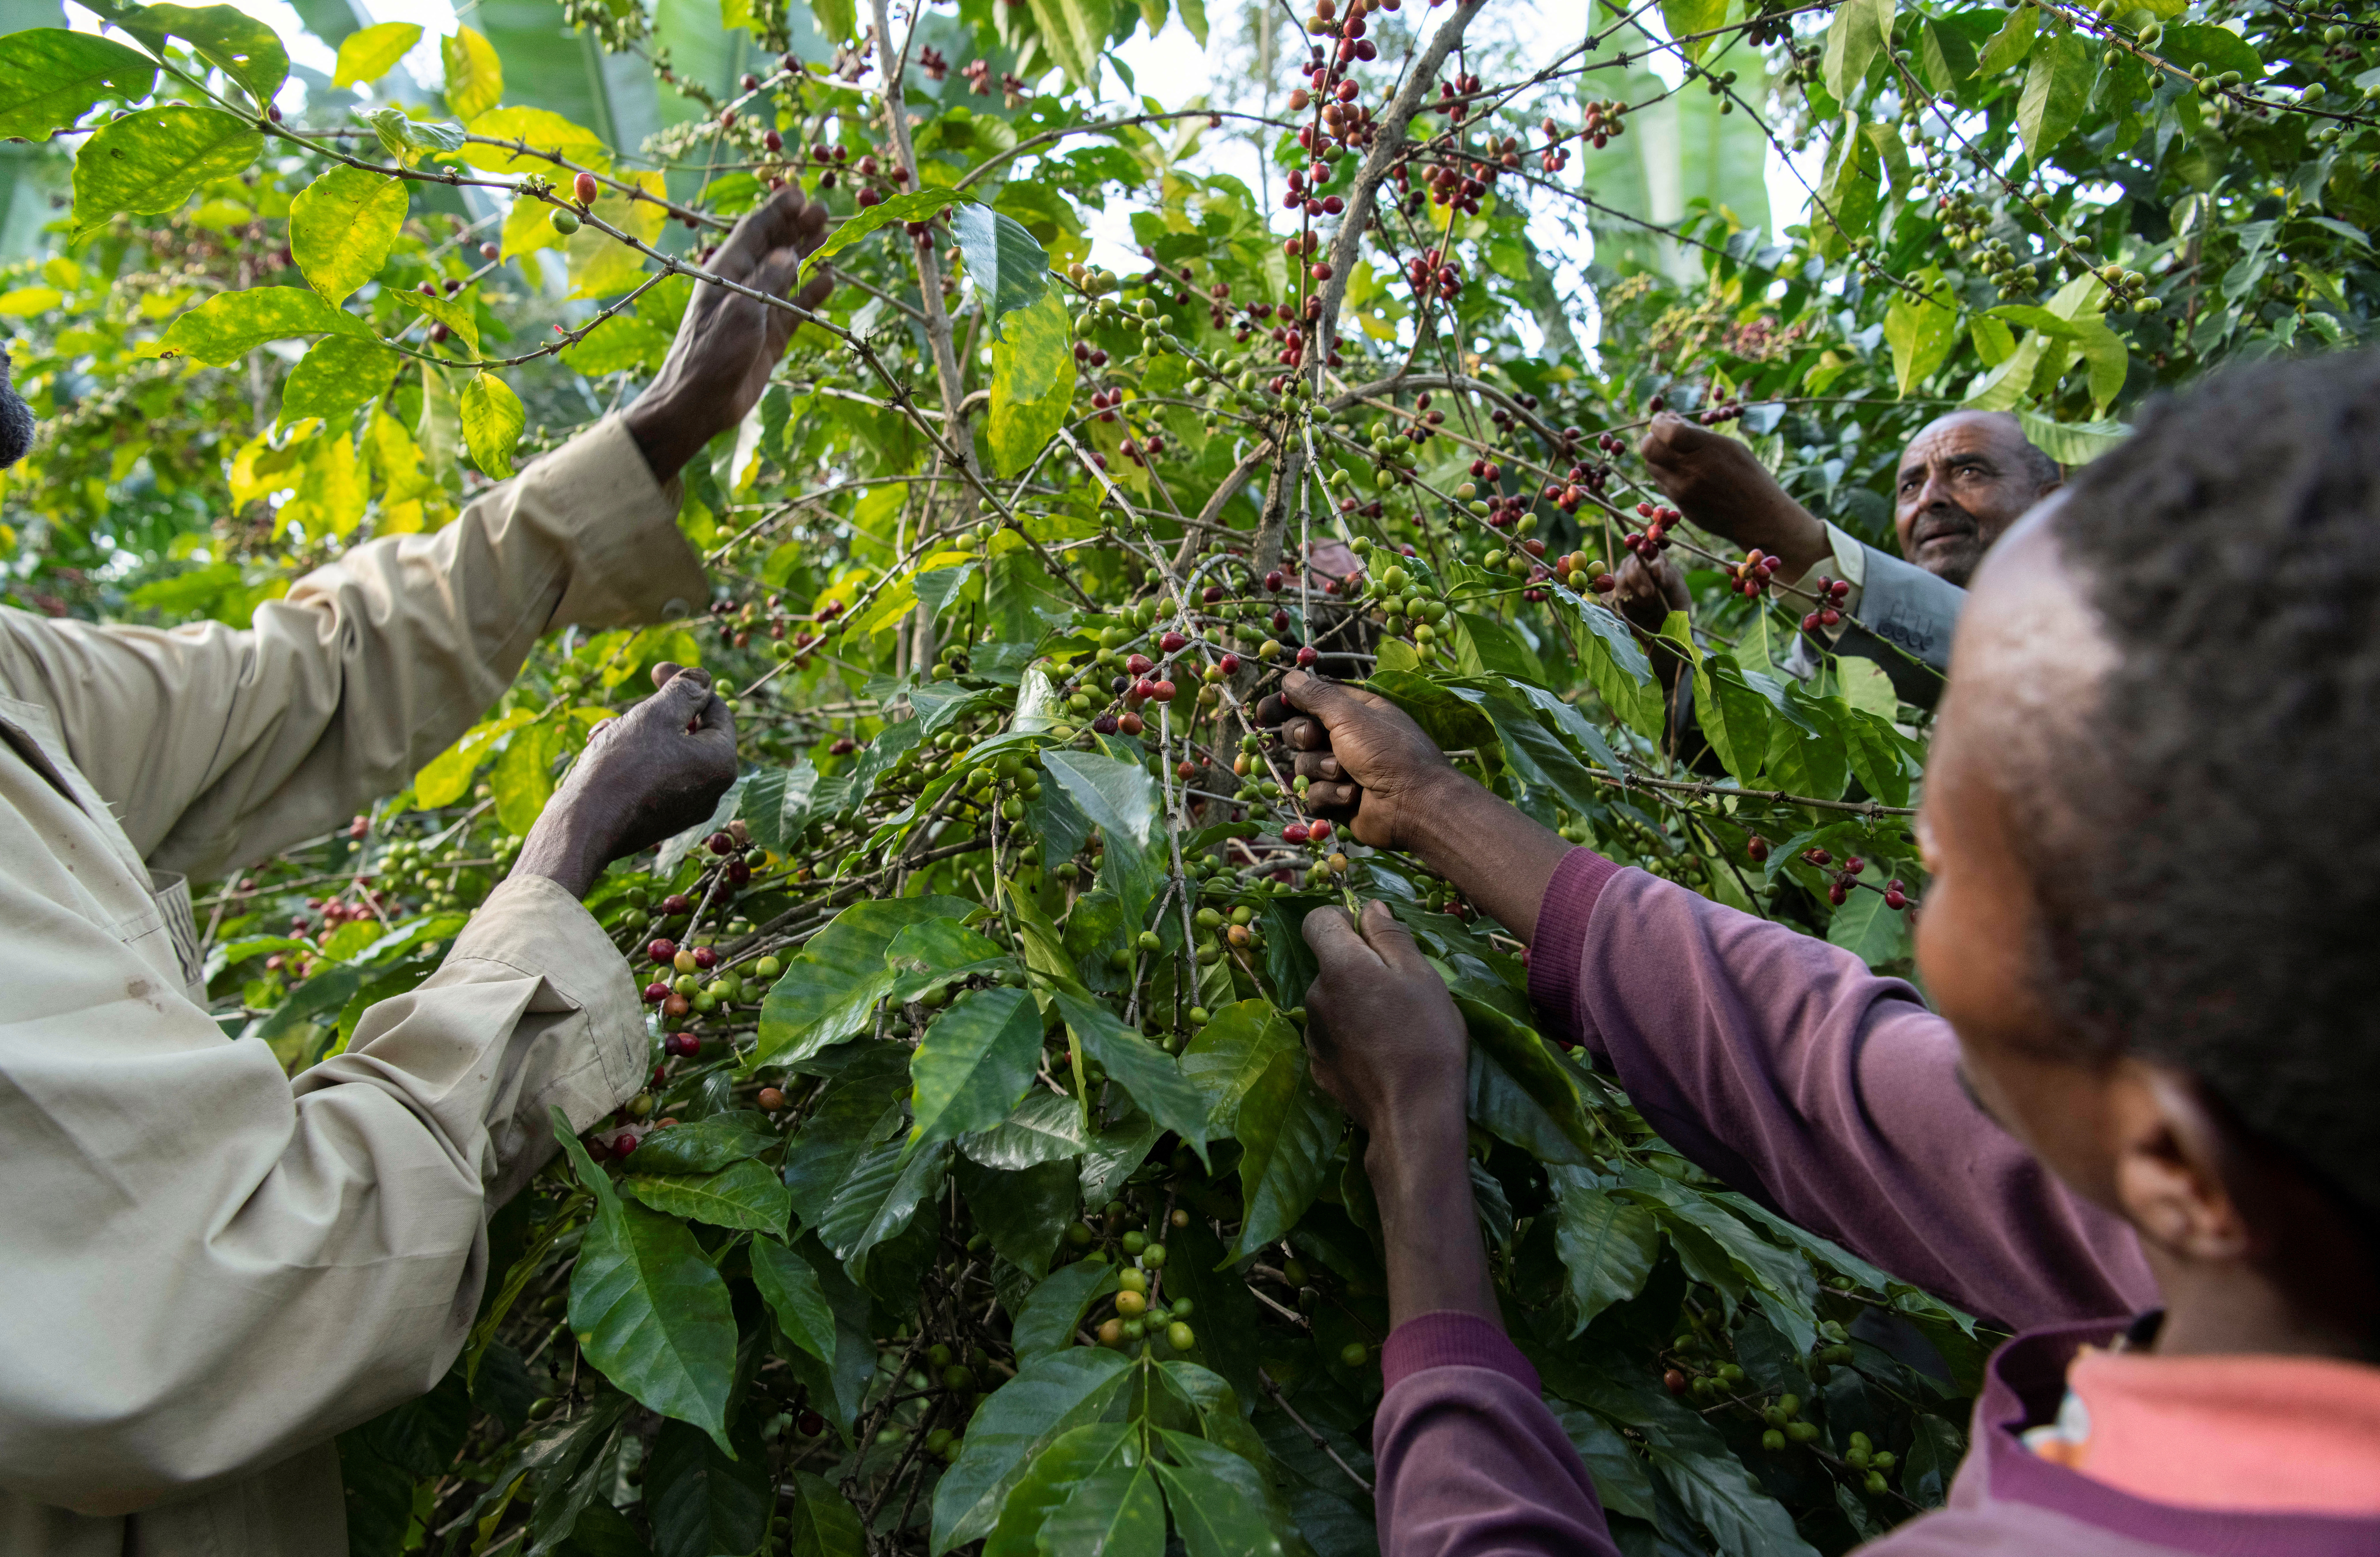 Farmers pick red coffee berries at Yosef Lema's farm at Shebedino district in Sidama, Ethiopia November 29, 2018.